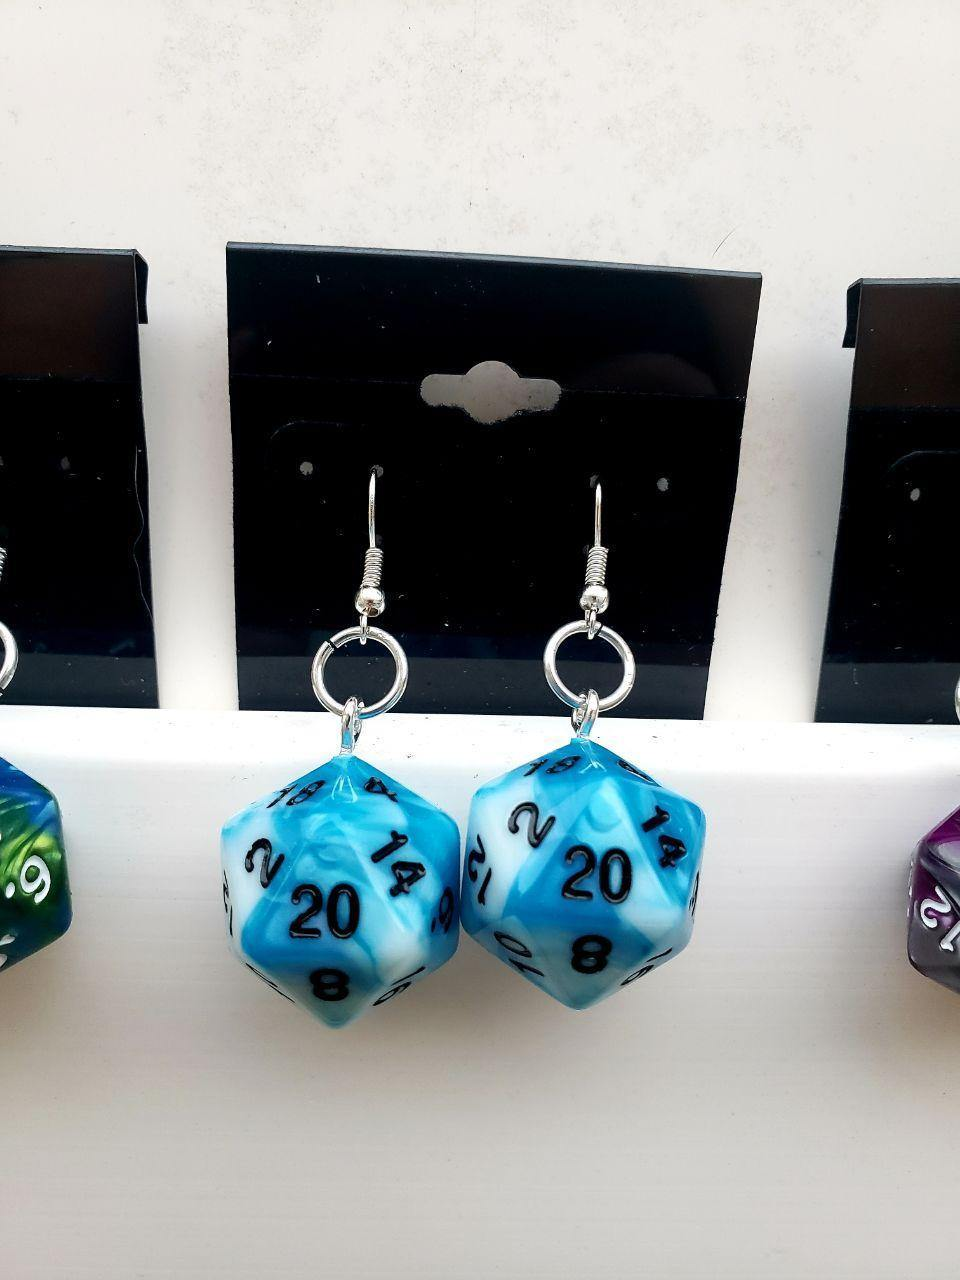 D20 Dice Earrings, Earrings - Sciggles